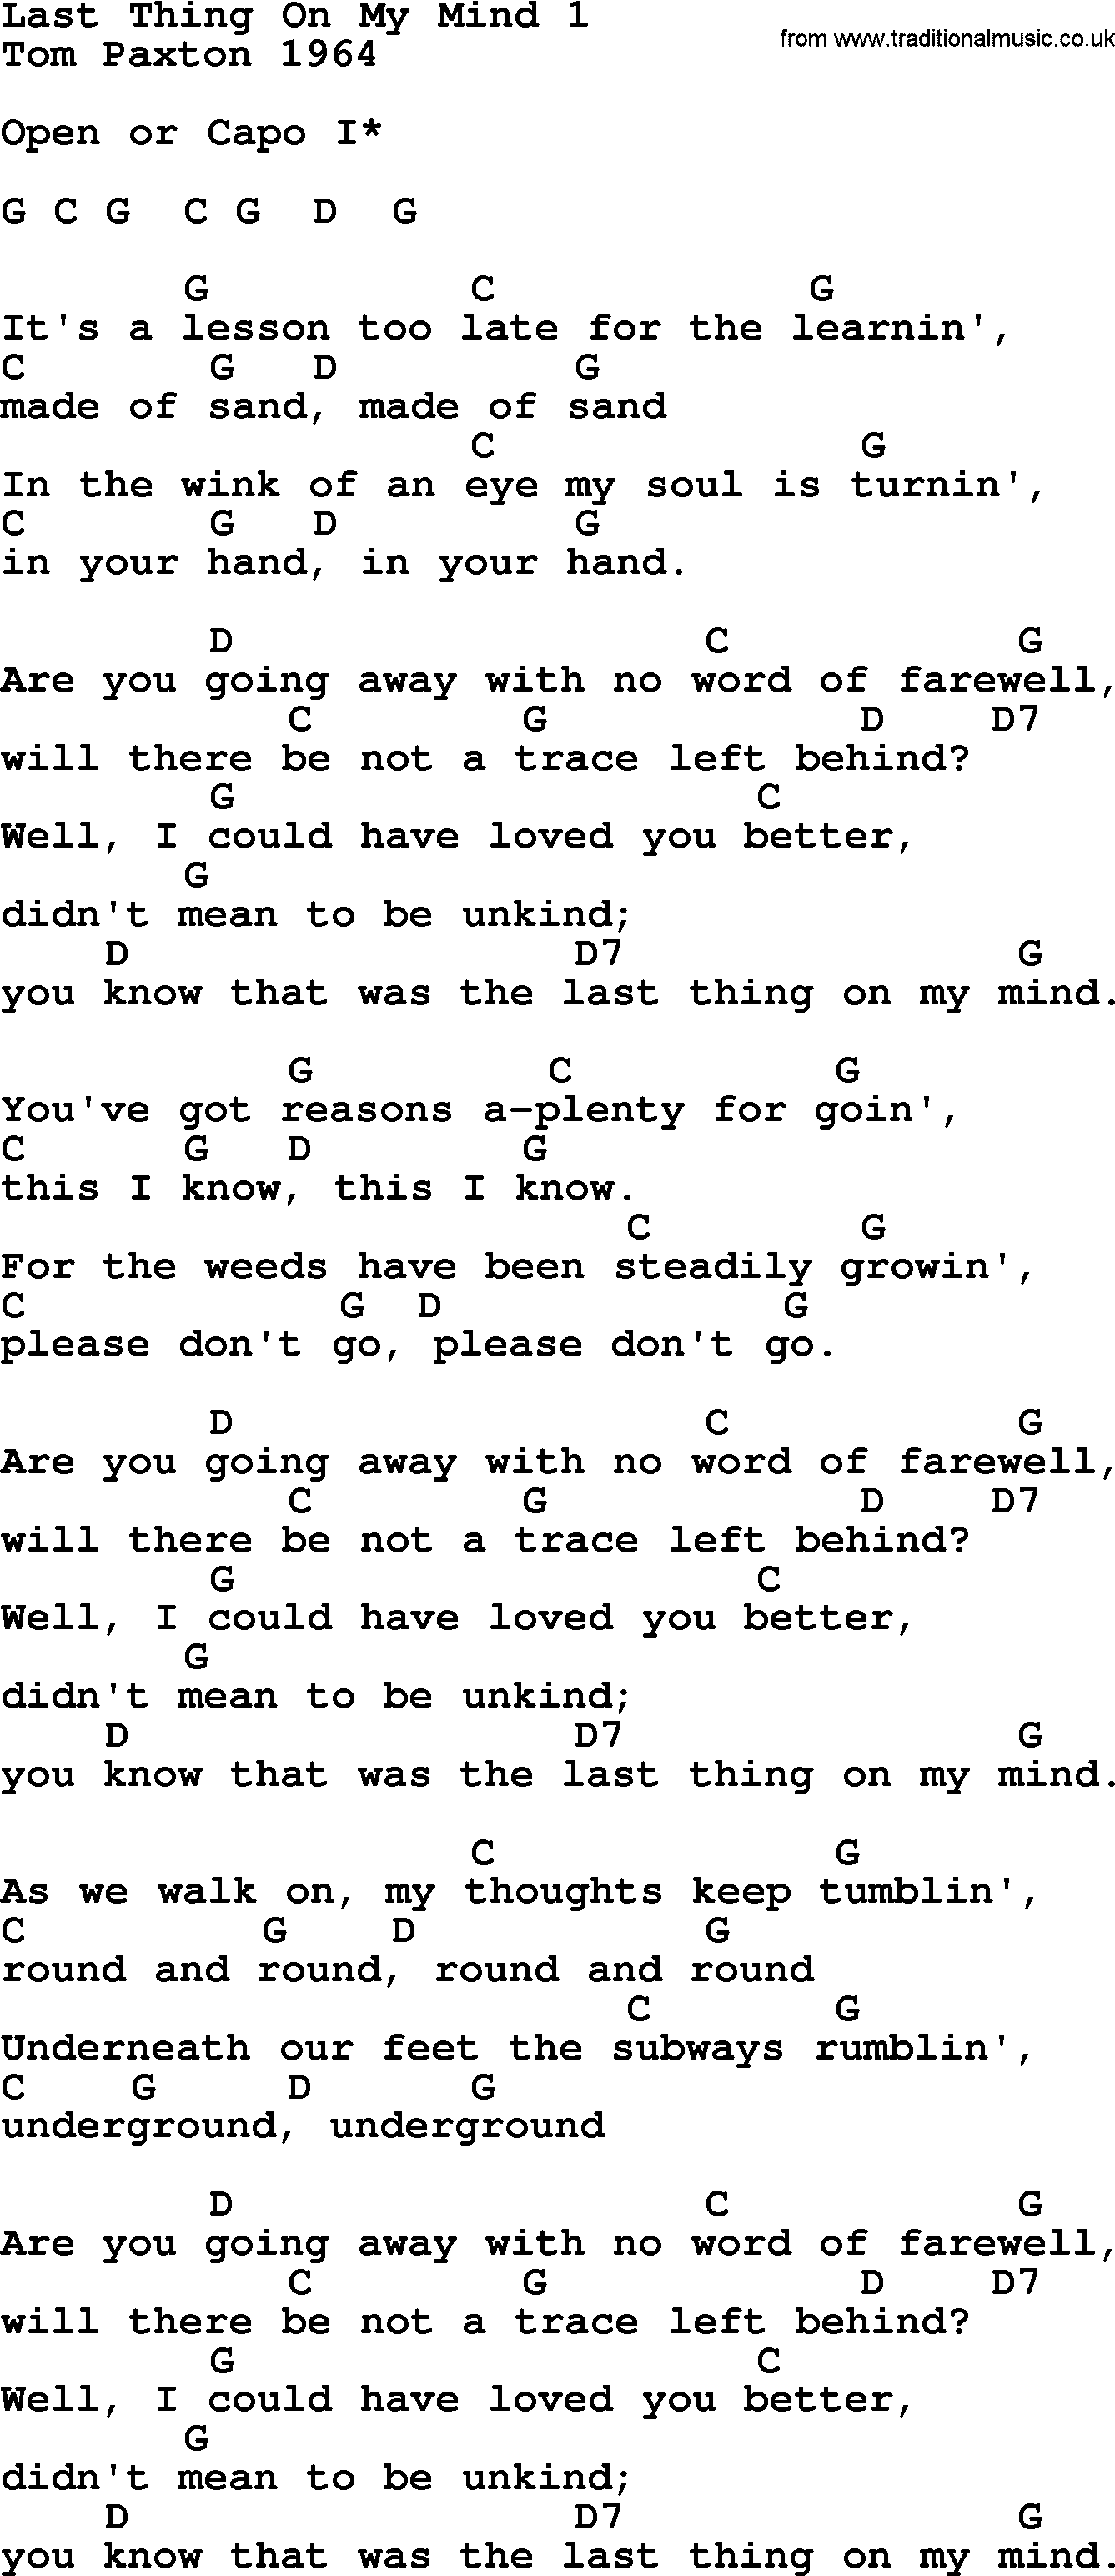 Tom Paxton Song Last Thing On My Mind 1 Lyrics And Chords Guitar